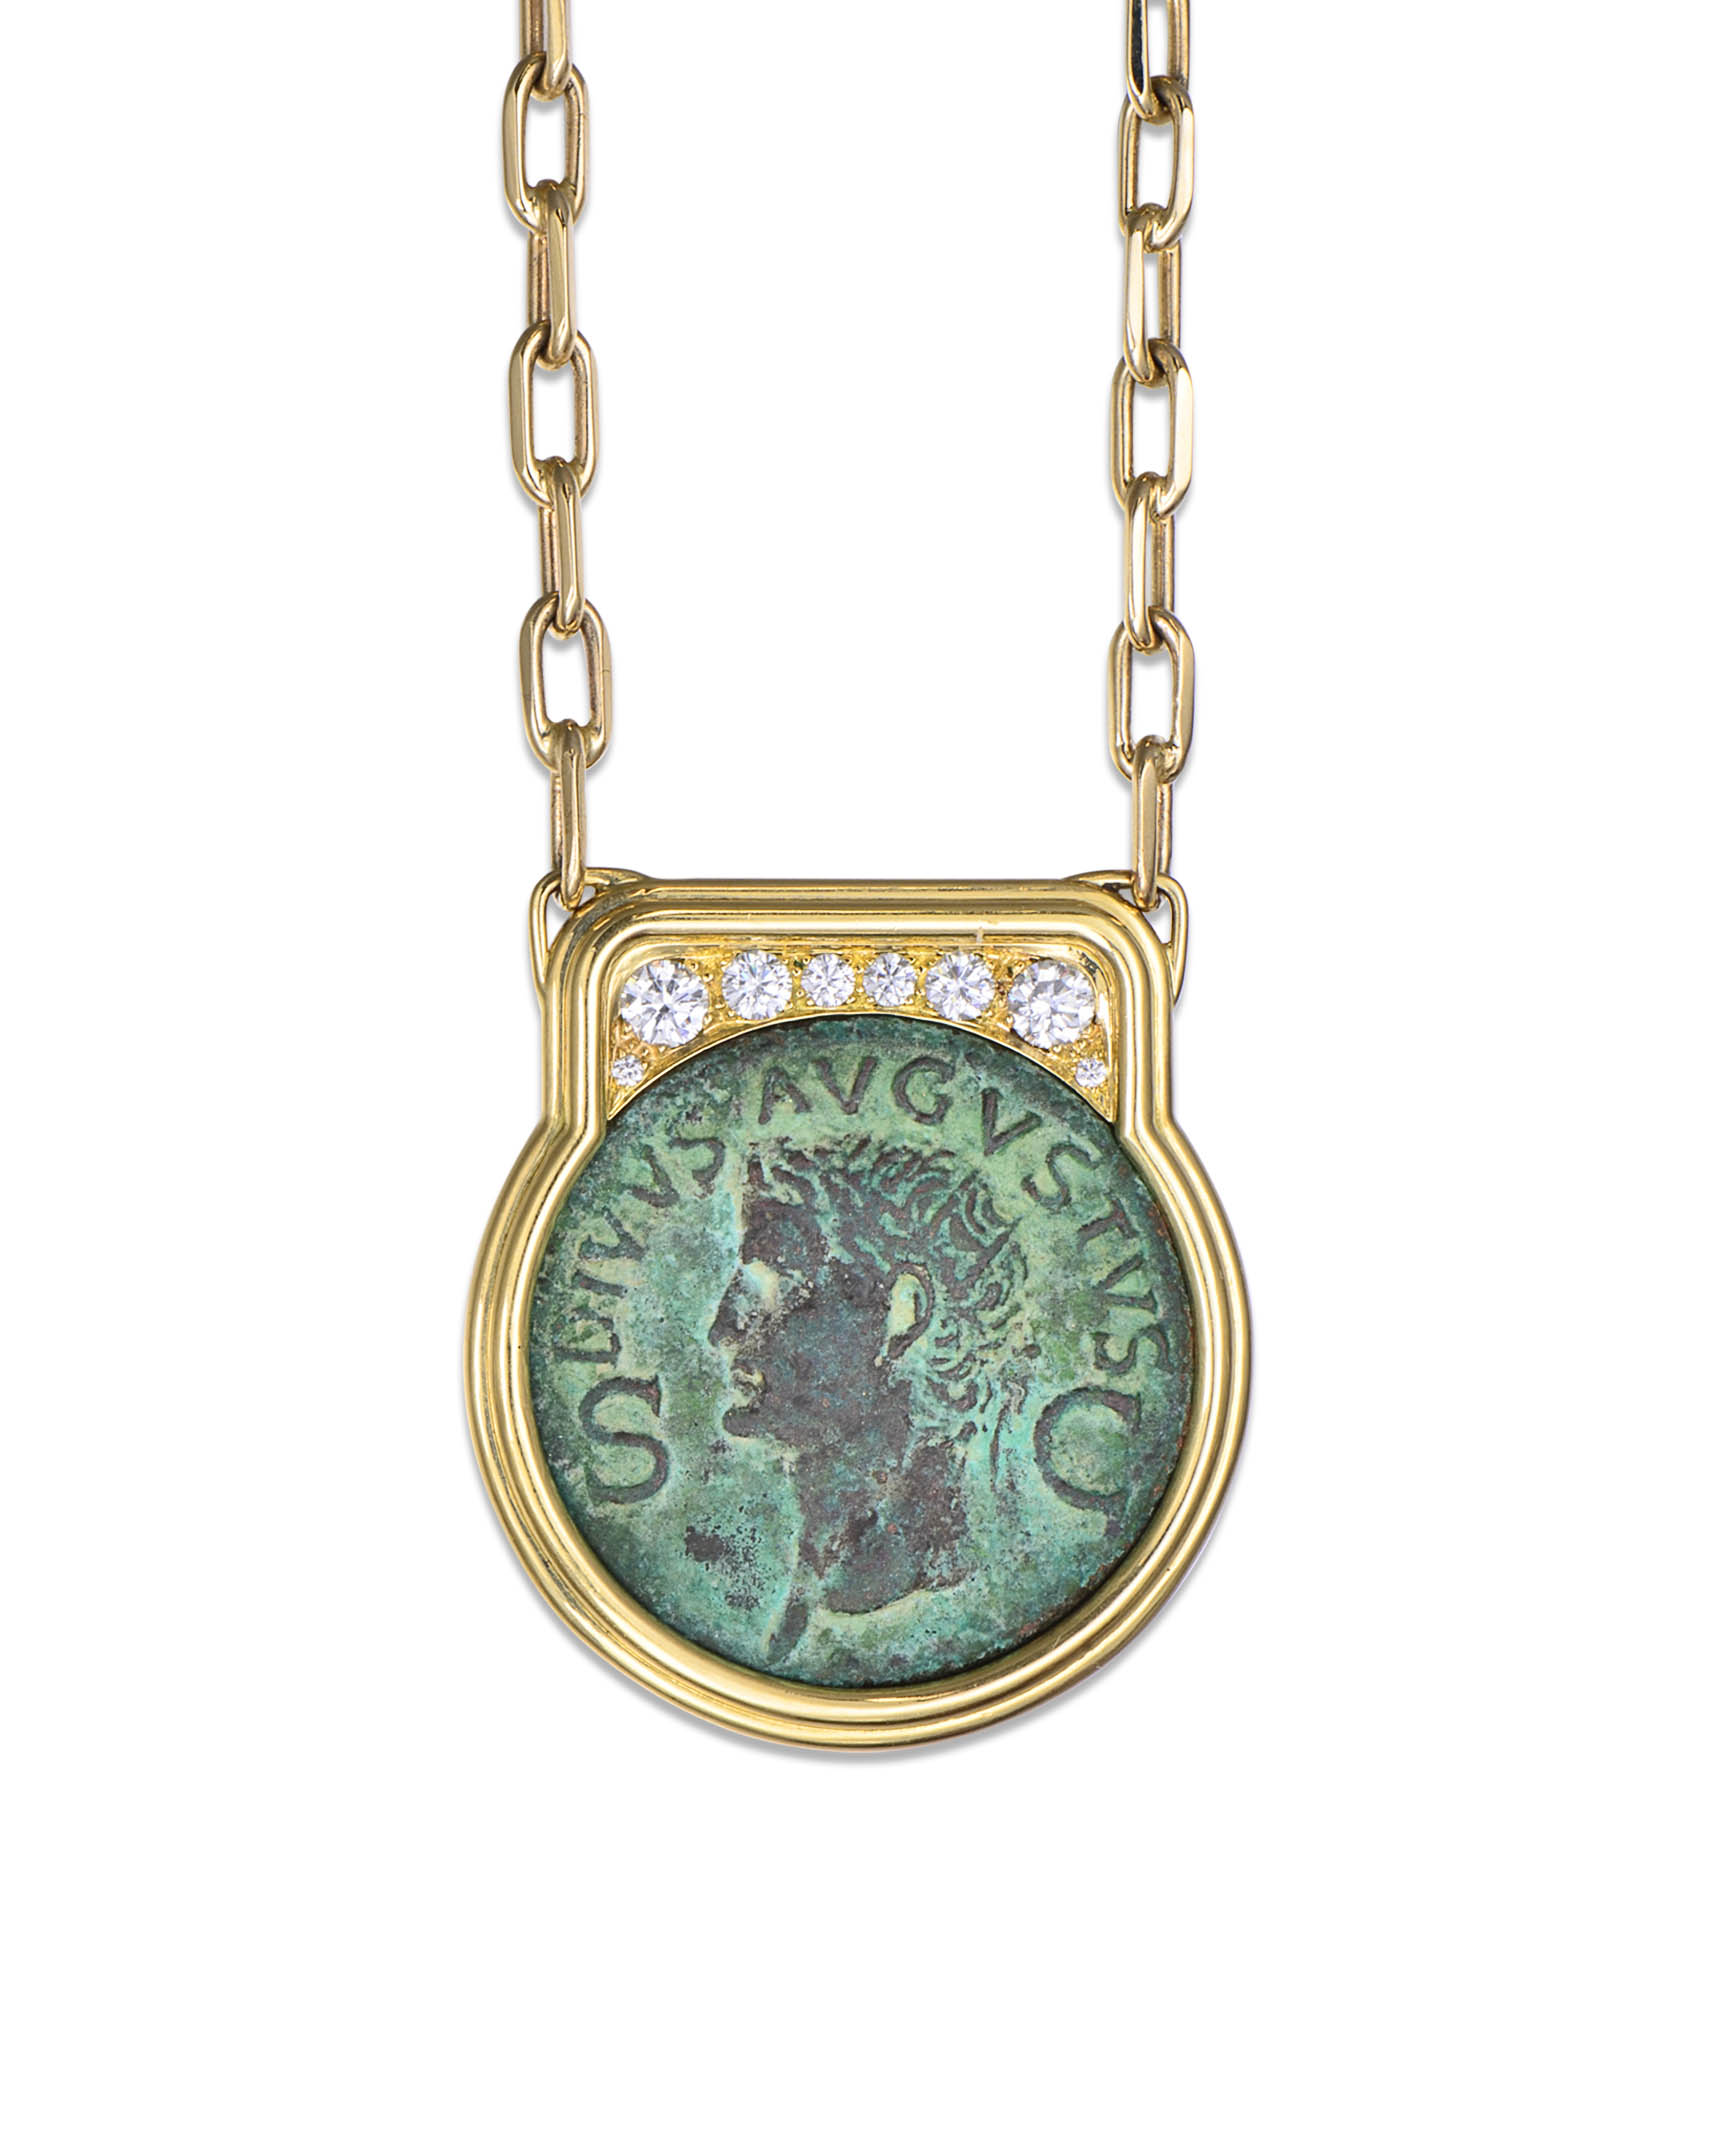 revoir gun necklace next bye fob products silver medallion charm biddy les roman au filles coin with statement design